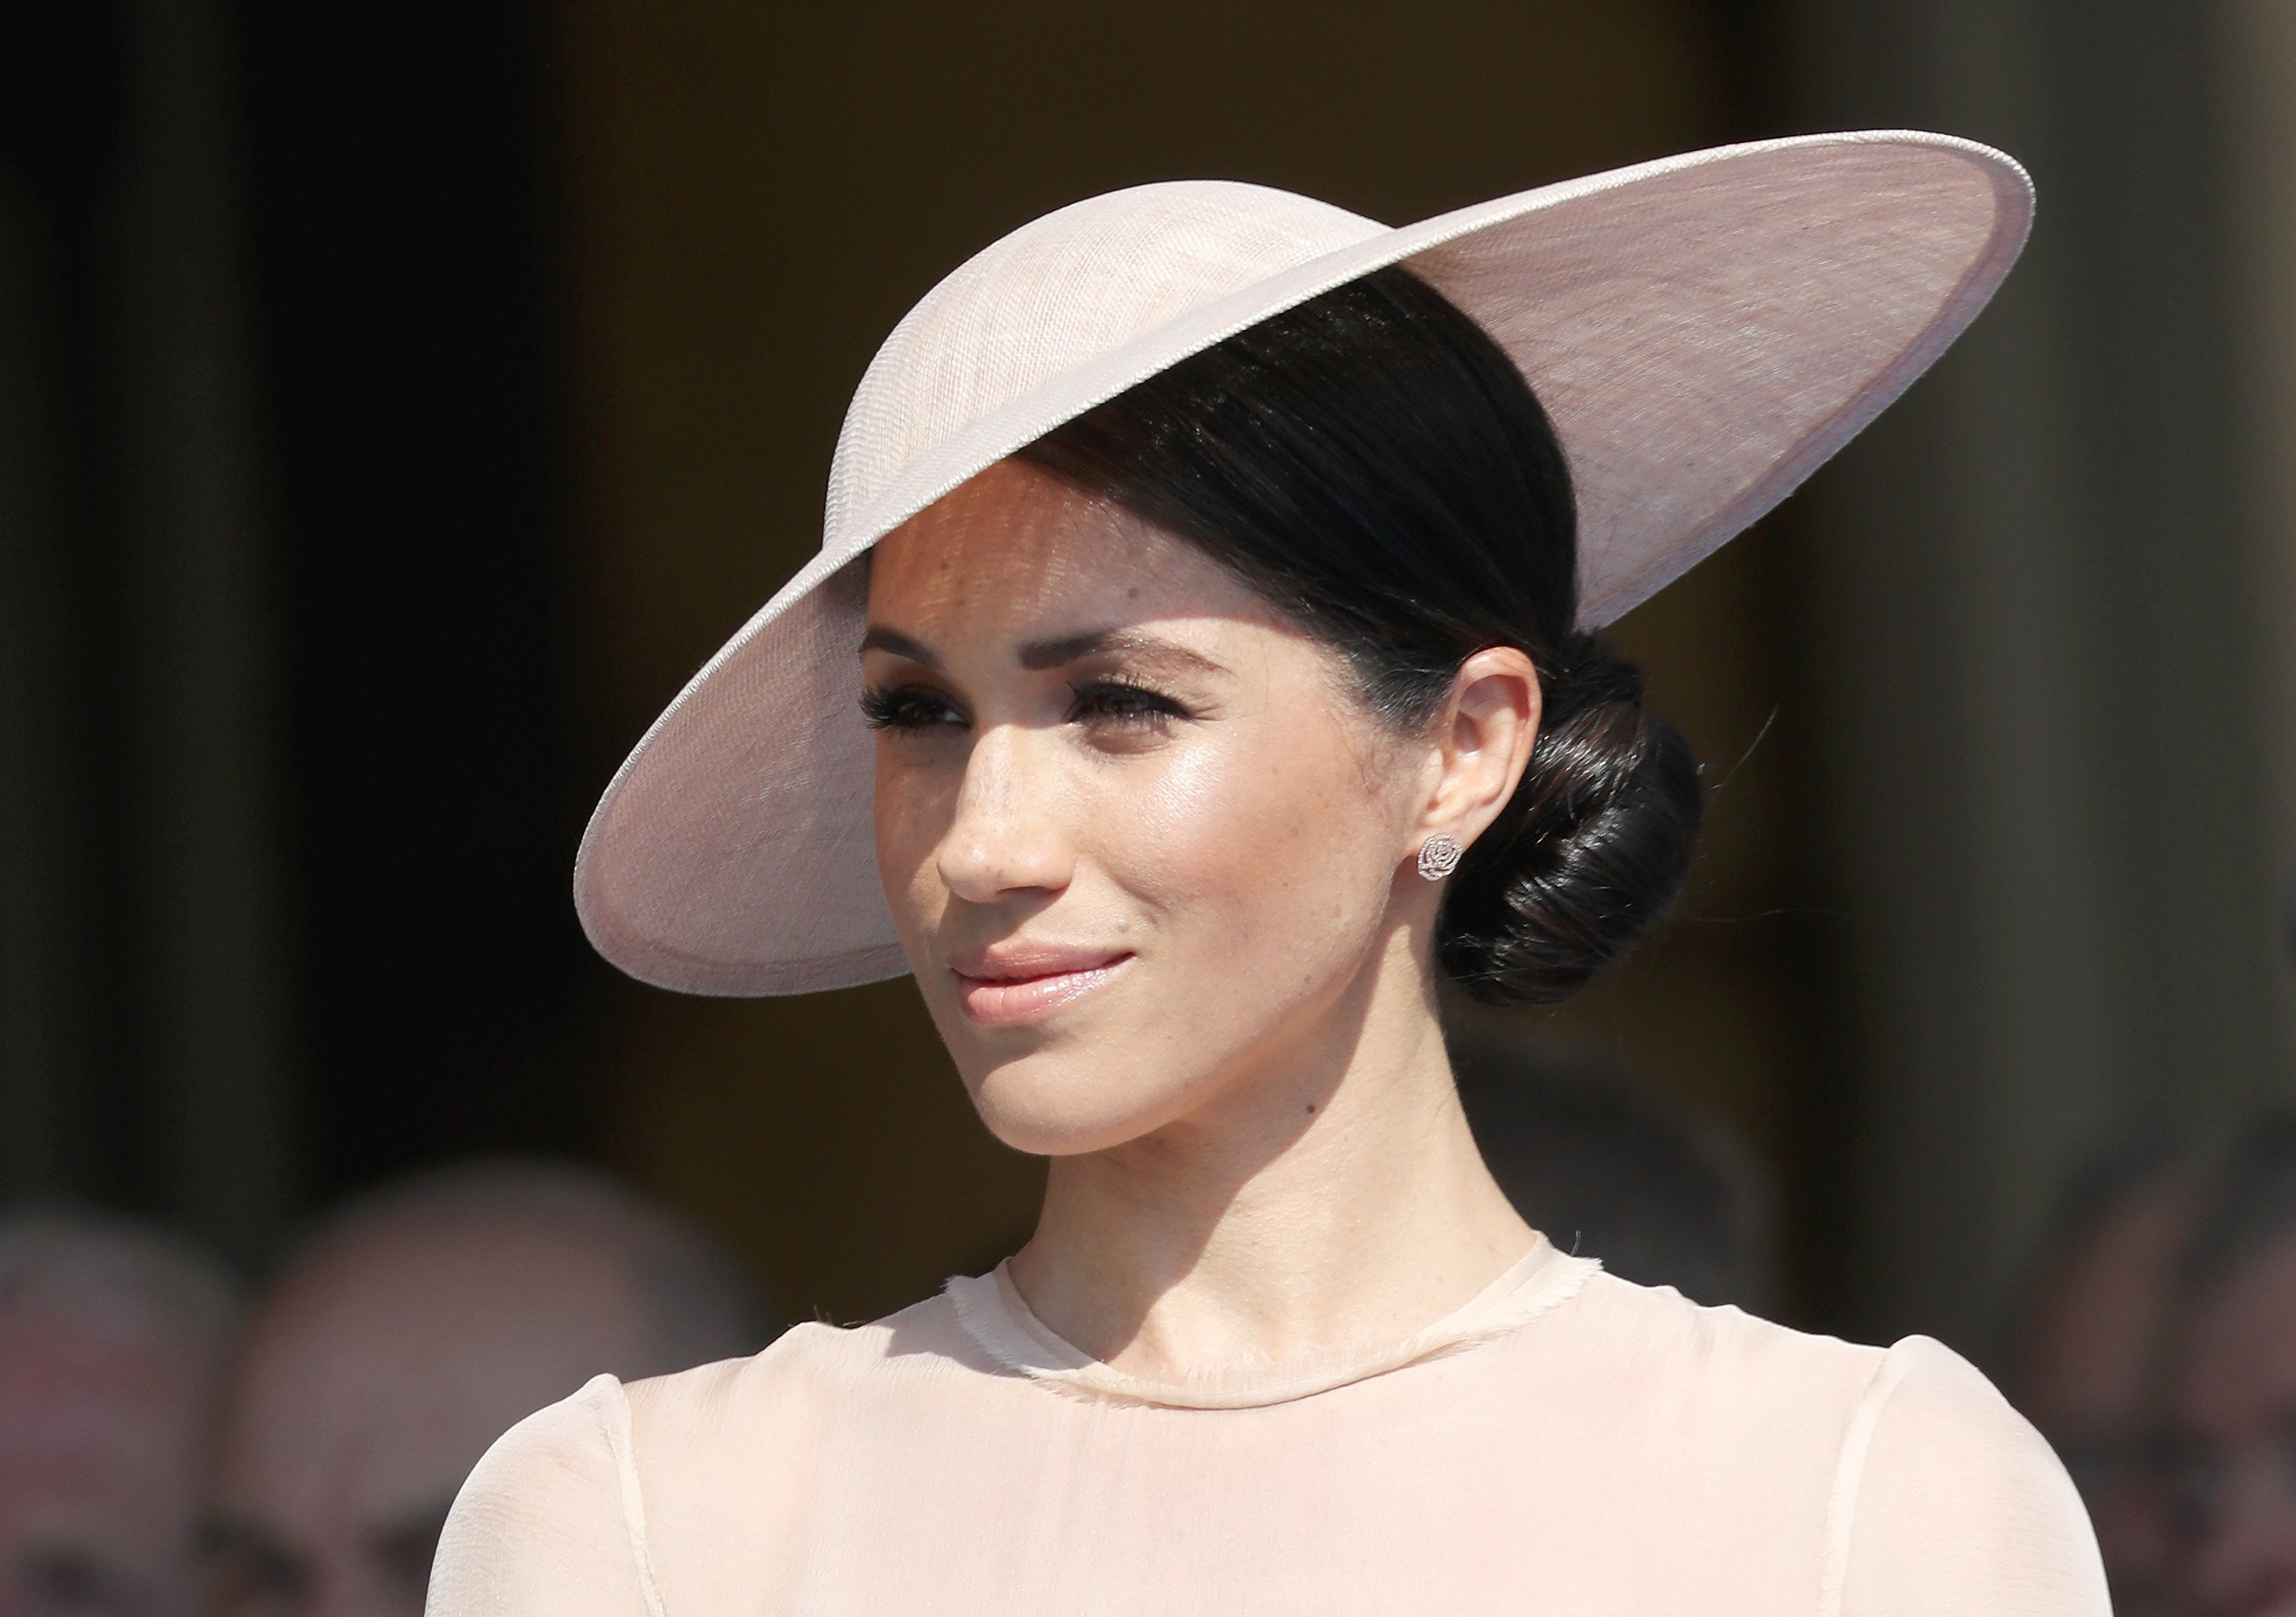 Meghan Markle attends Prince Charles' birthday celebration held at Buckingham Palace on May 22, 2018 in London, England | Photo: Getty Images